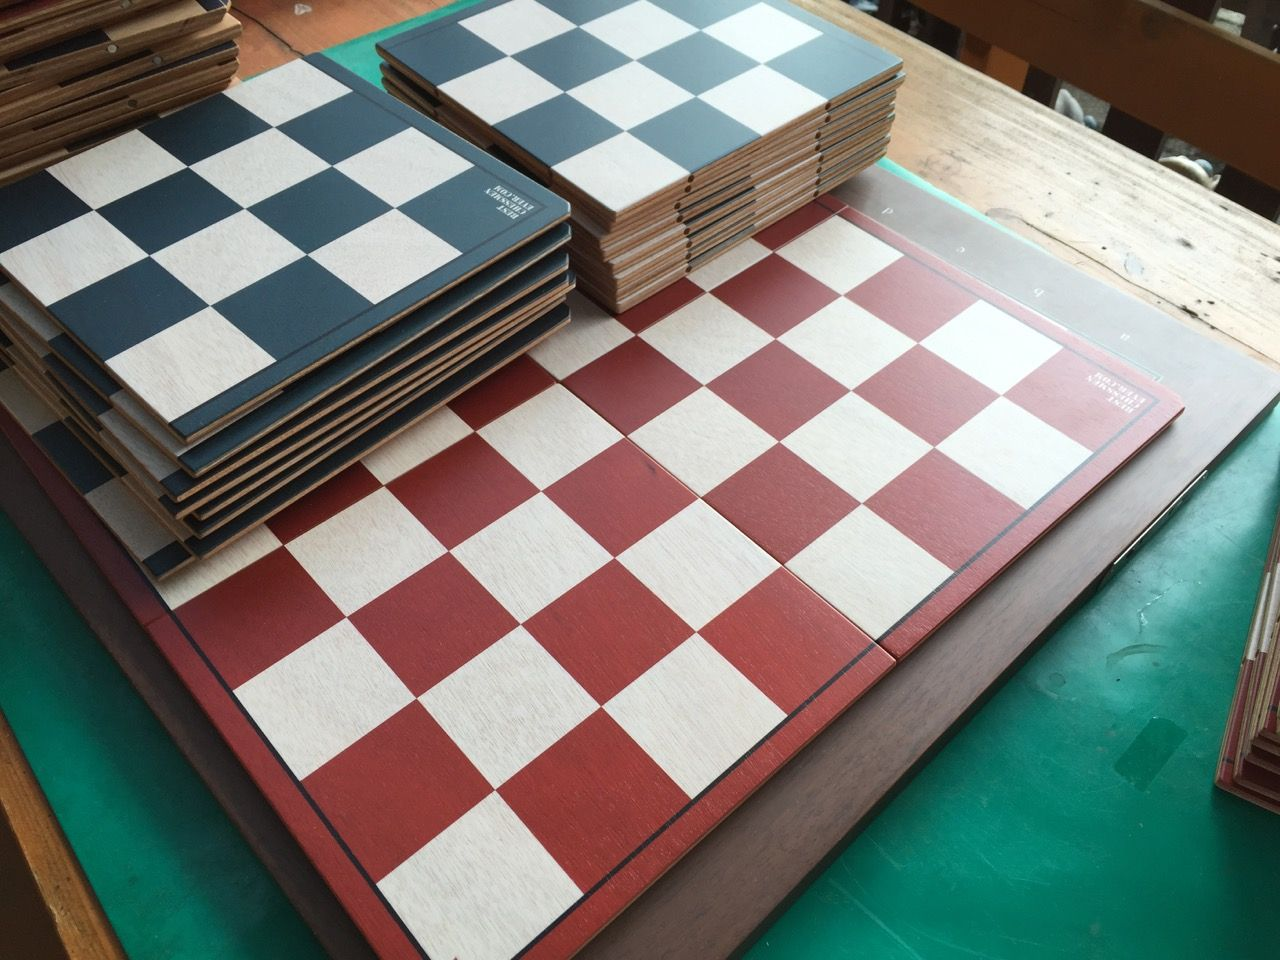 New design of BCE magnetic chessboards - Chess Forums